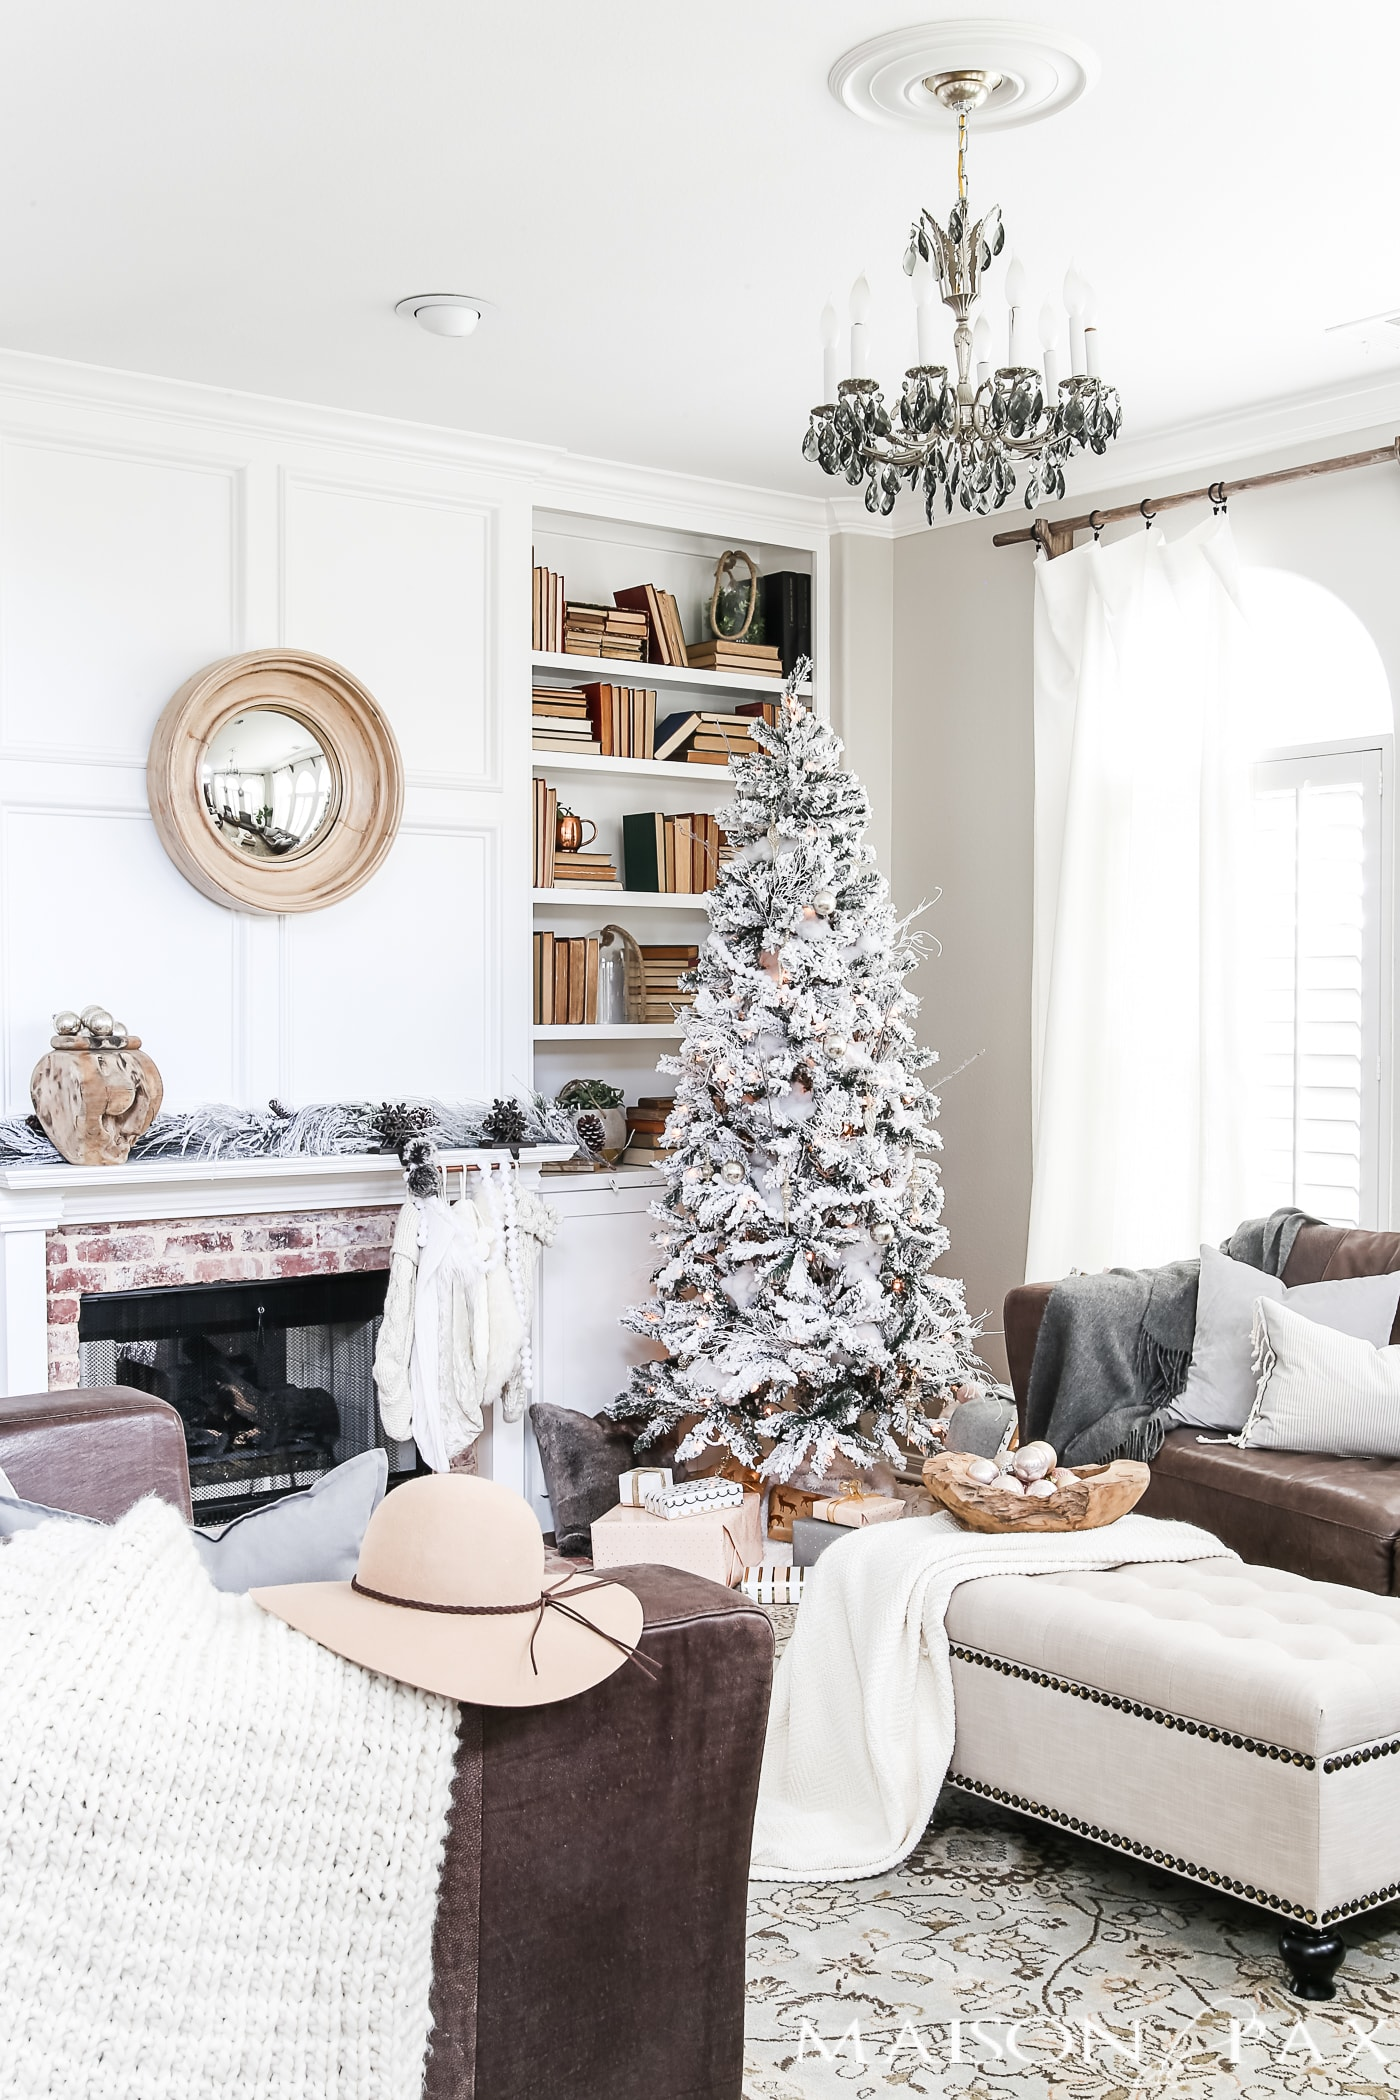 whites, creams, and touches of blush create neutral holiday decor in this Christmas living room #holidaydecor